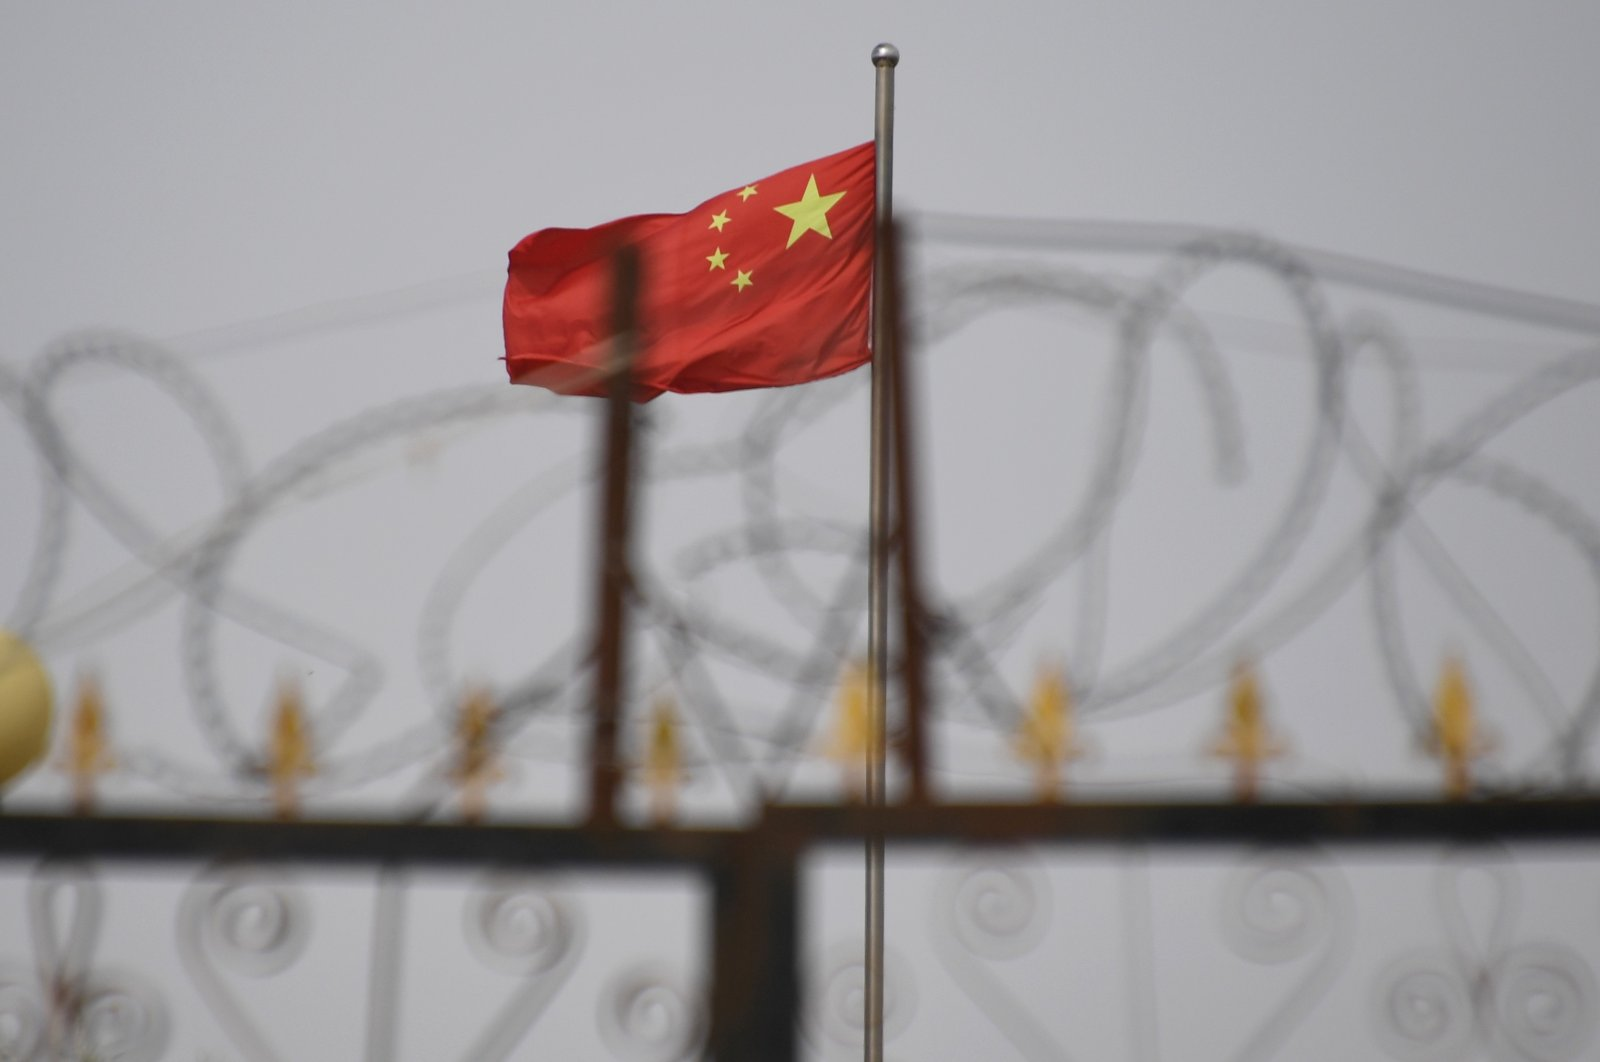 In this June 4, 2019, file photo, a Chinese flag is seen behind razor wire at a housing compound in Yangisar, south of Kashgar, in western Xinjiang region, China. (Badung Police via AFP)